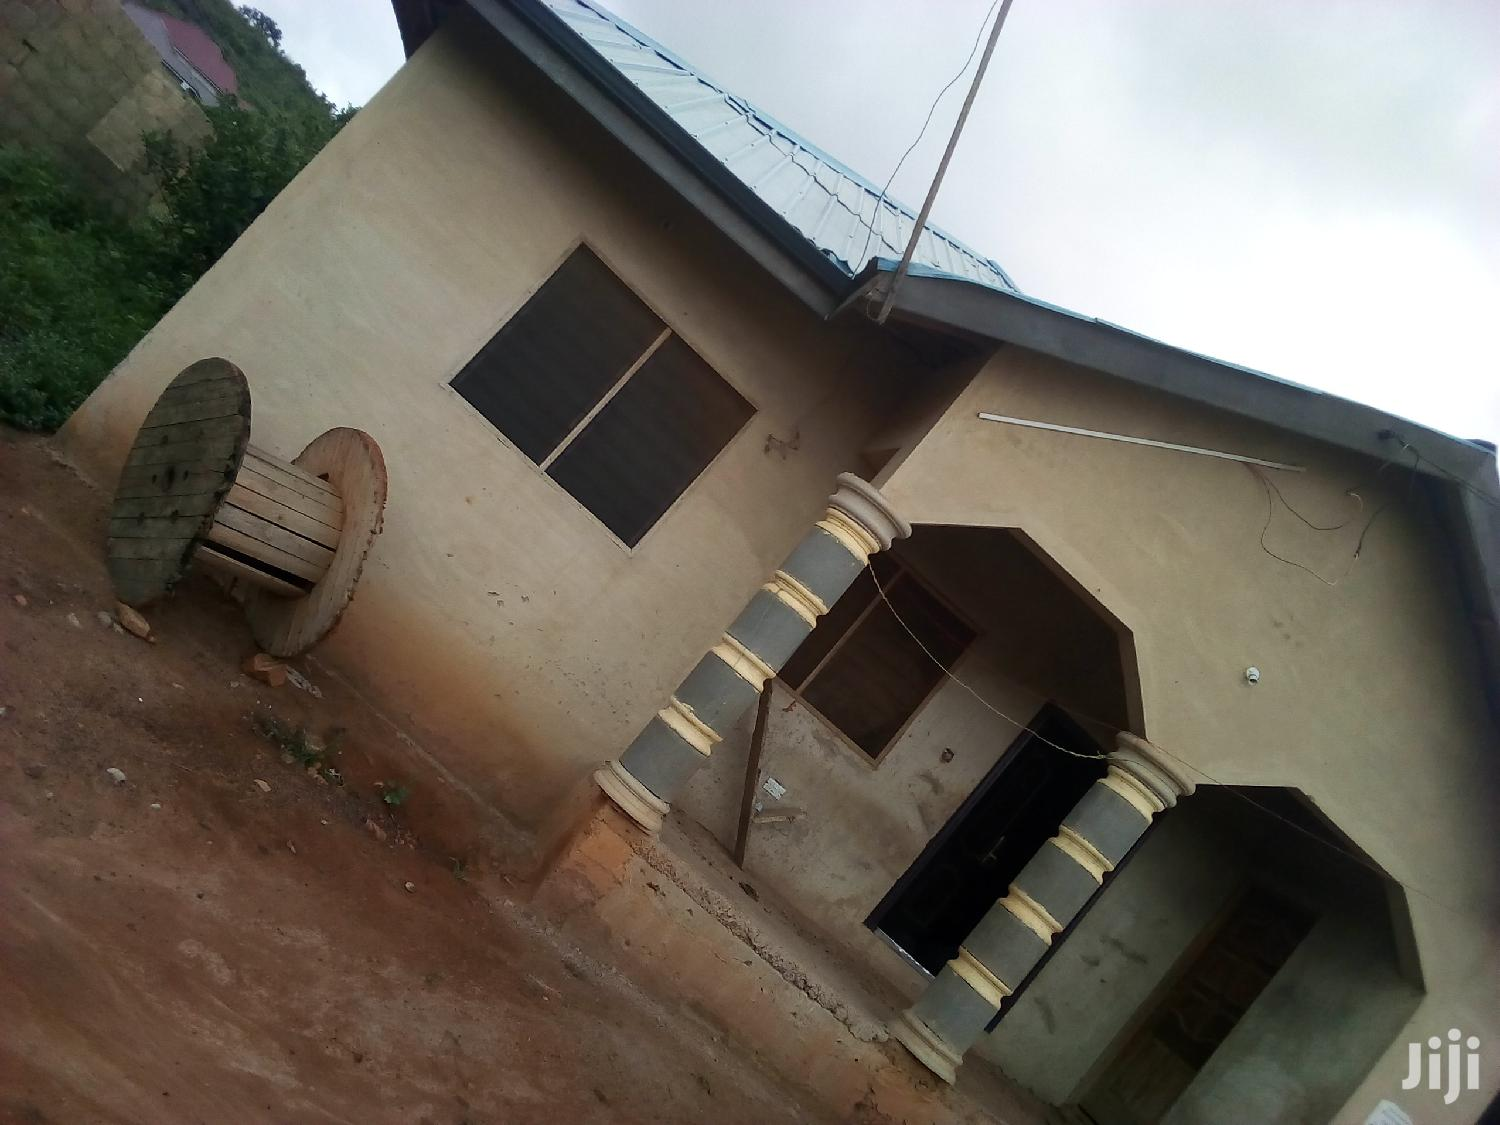 Archive: Hot Cake 3 Bedroom House For Sale At Oyibi Mensah Bar